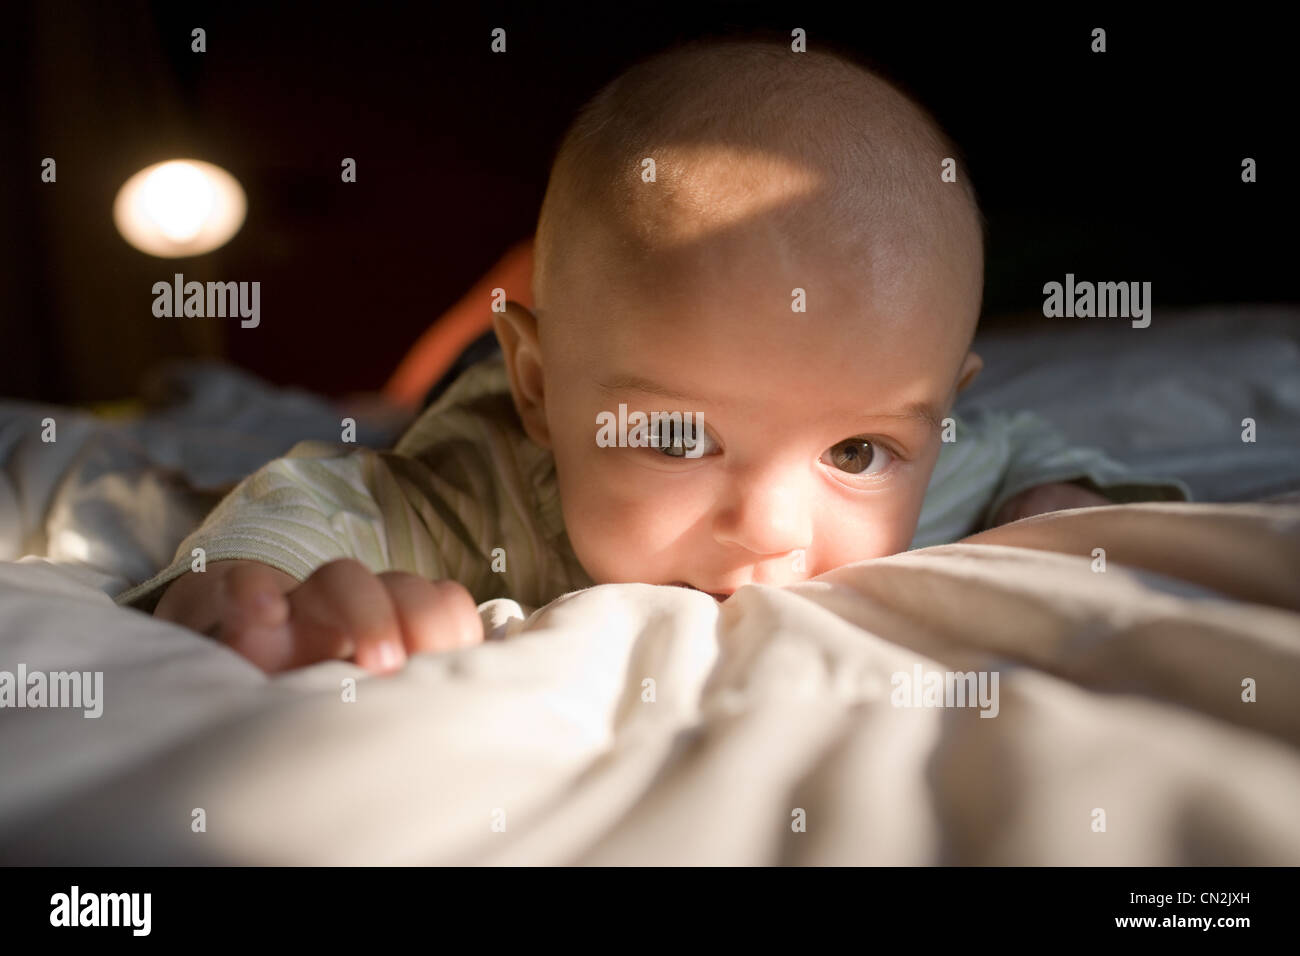 Baby boy lying on front, close up - Stock Image